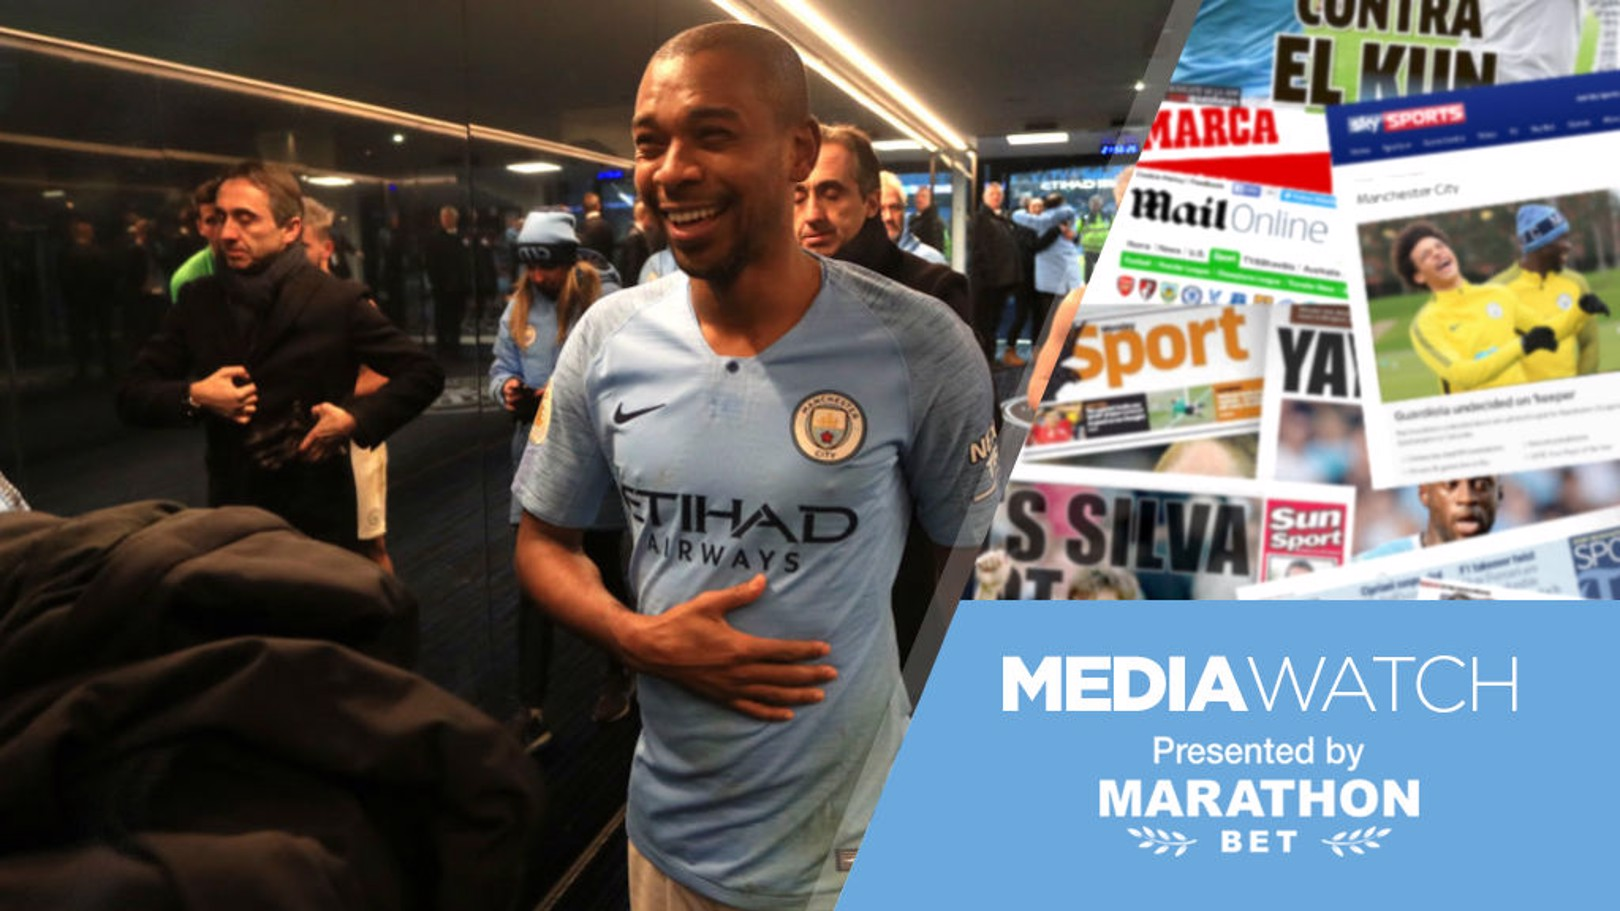 MEDIA WATCH: Fernandinho received widespread praise for his performance in the win over Liverpool